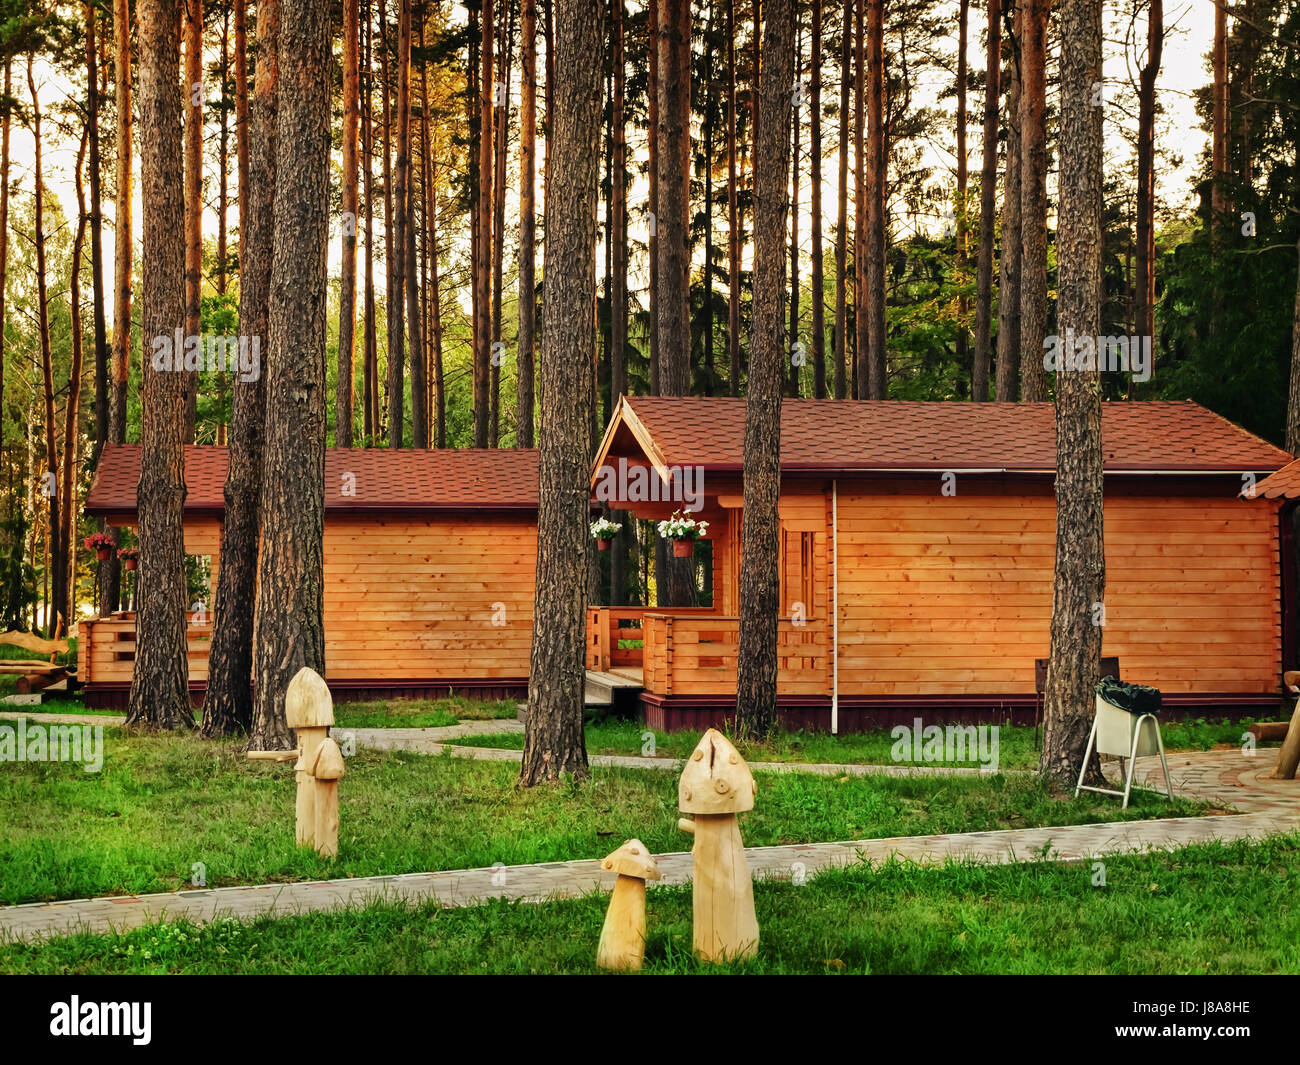 house, building, cottage, country, scenery, countryside, nature, forest, hut, - Stock Image